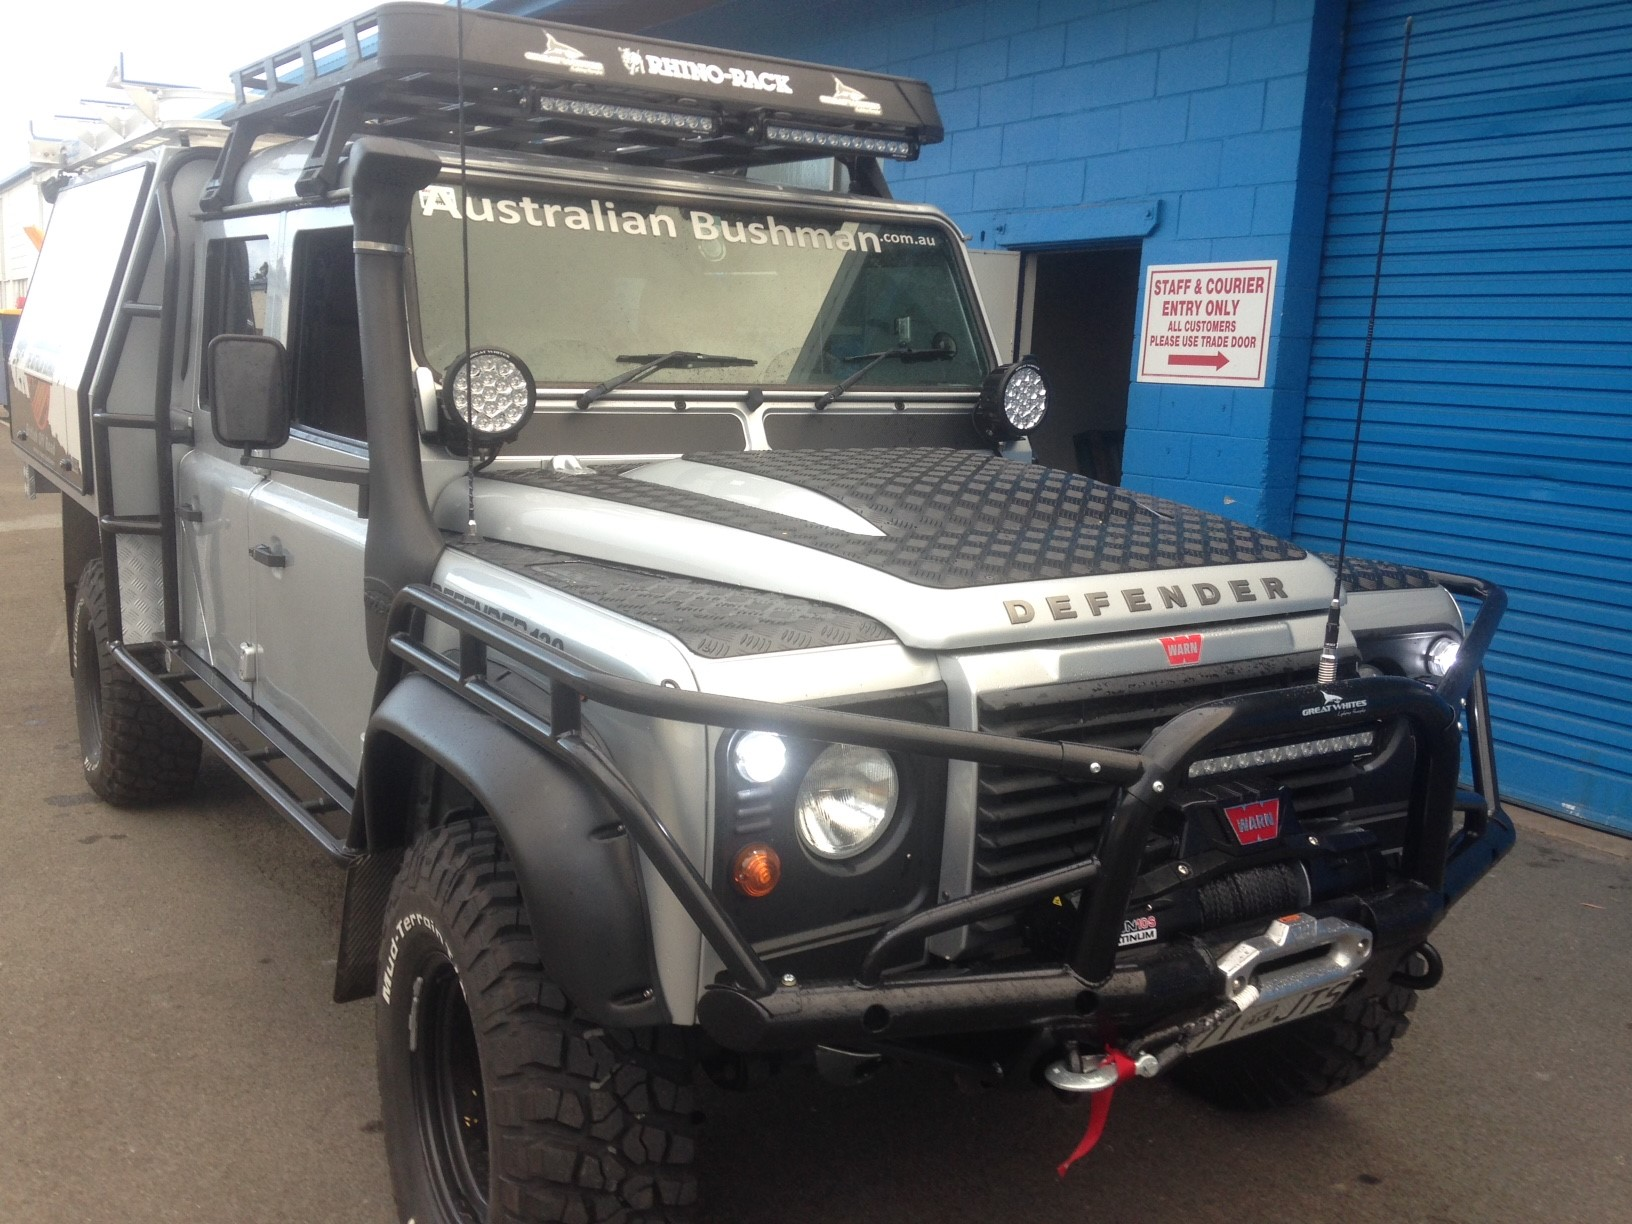 The Australian Bushman Land Rover Defender after the British Off Road treatment